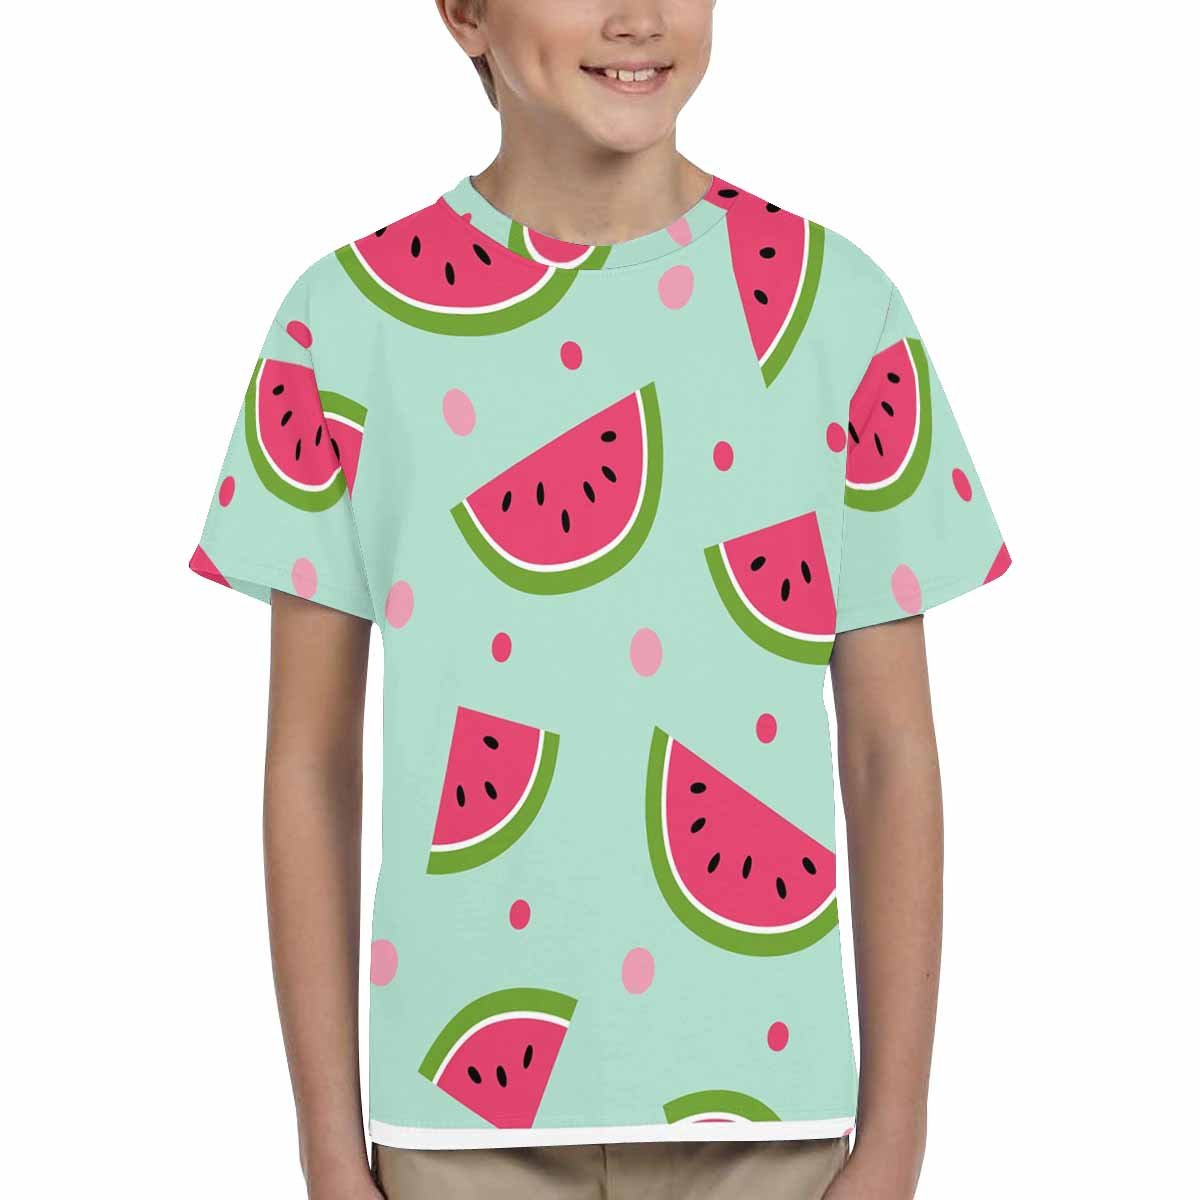 INTERESTPRINT Cute with Watermelons and Dots Kids T-Shirt XS-XL